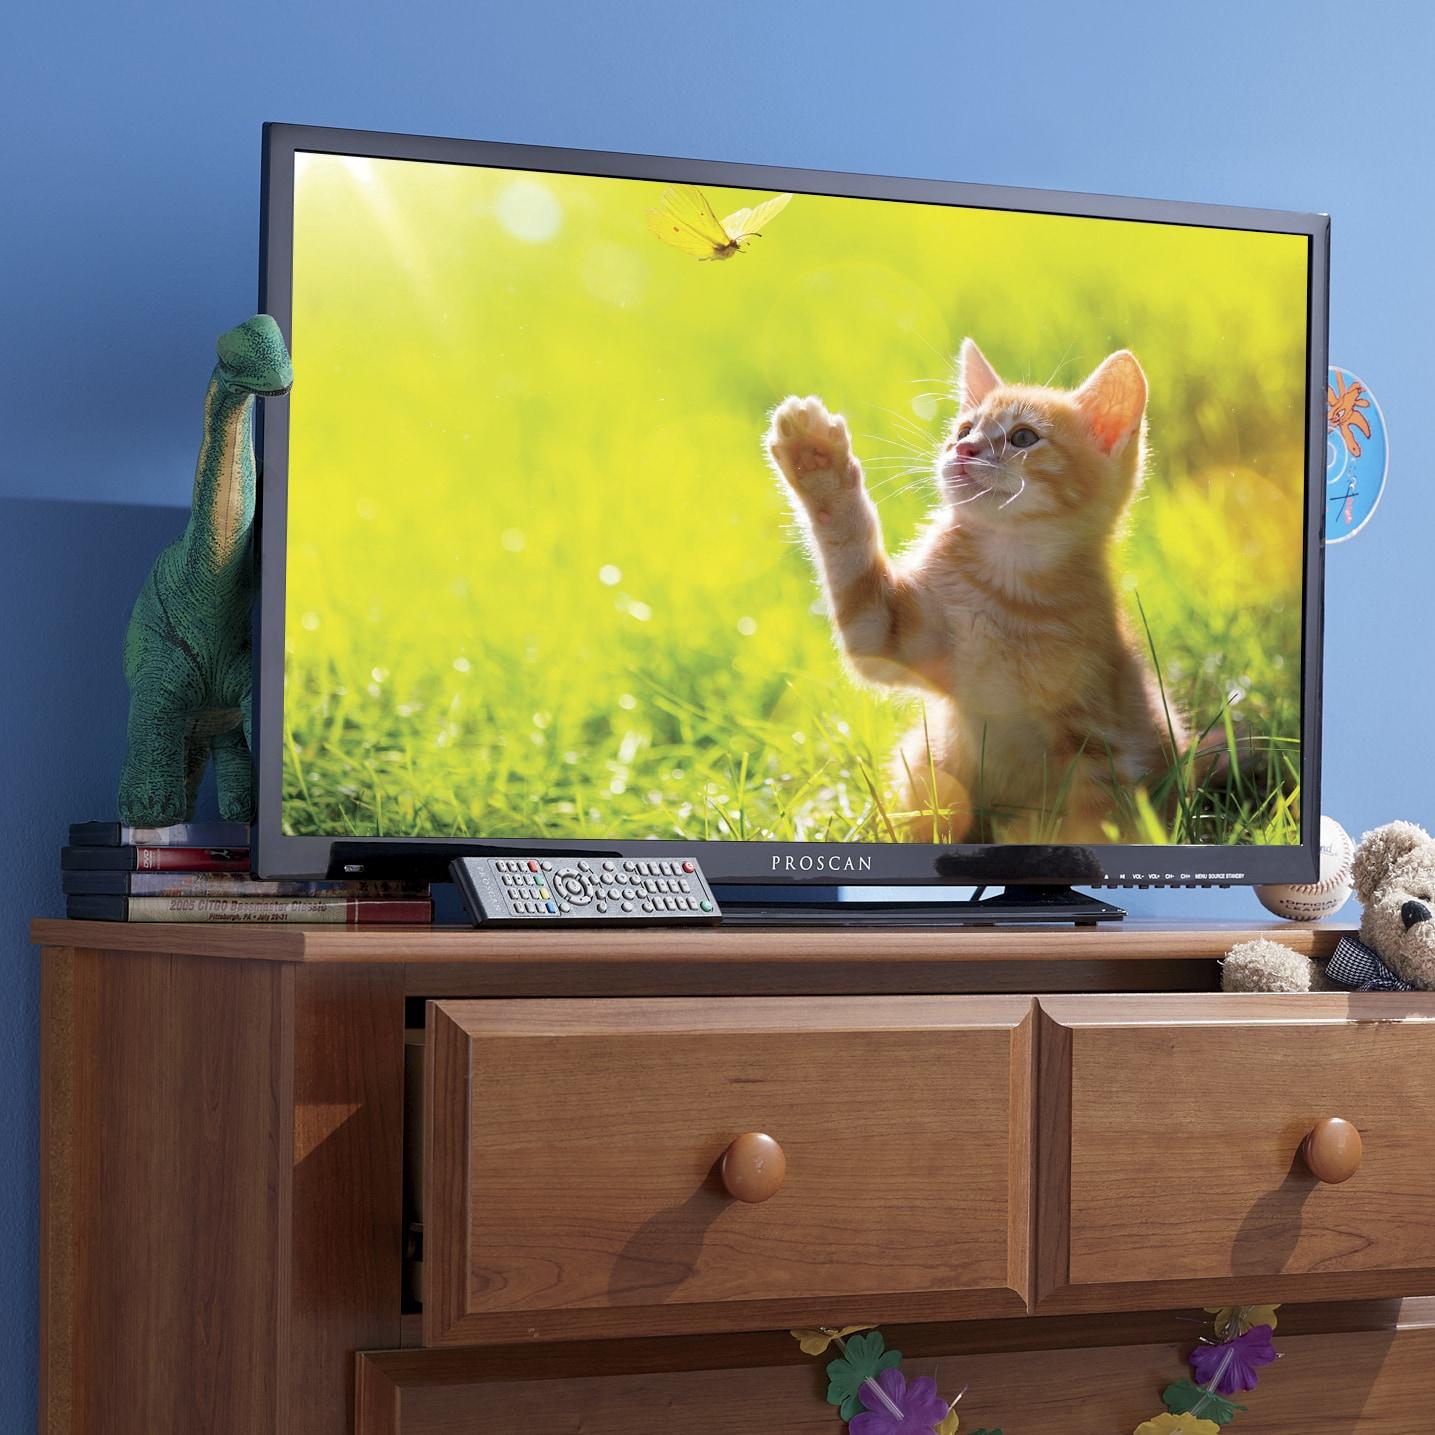 20+ Proscan Tv Menu Pictures and Ideas on Weric